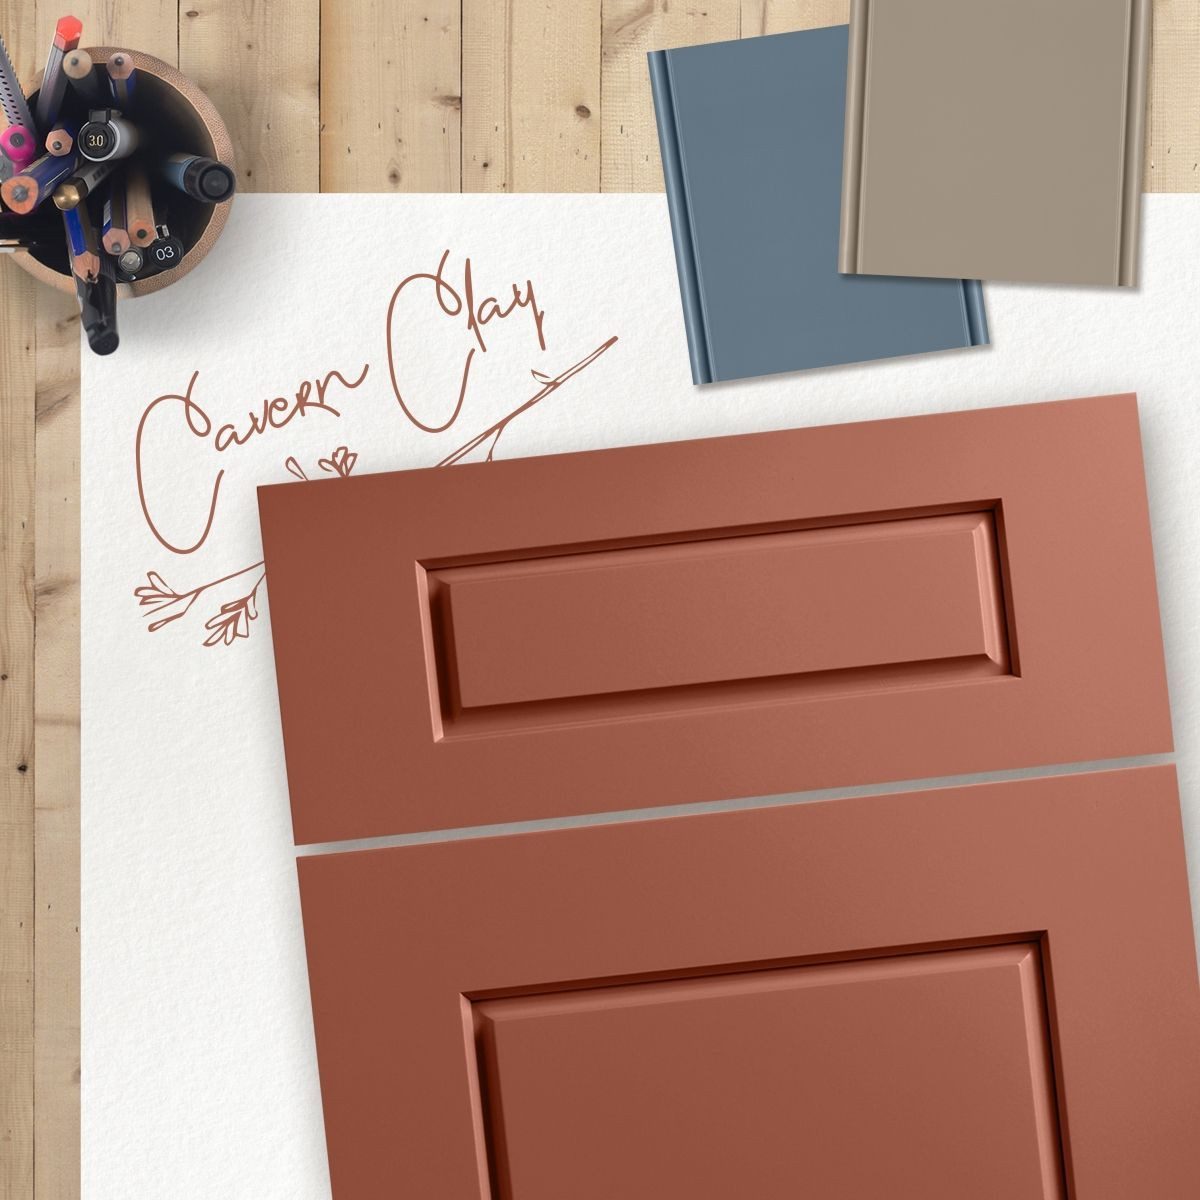 Sherwin-Williams Embraces the Natural Wonders with its 2019 Color of the Year